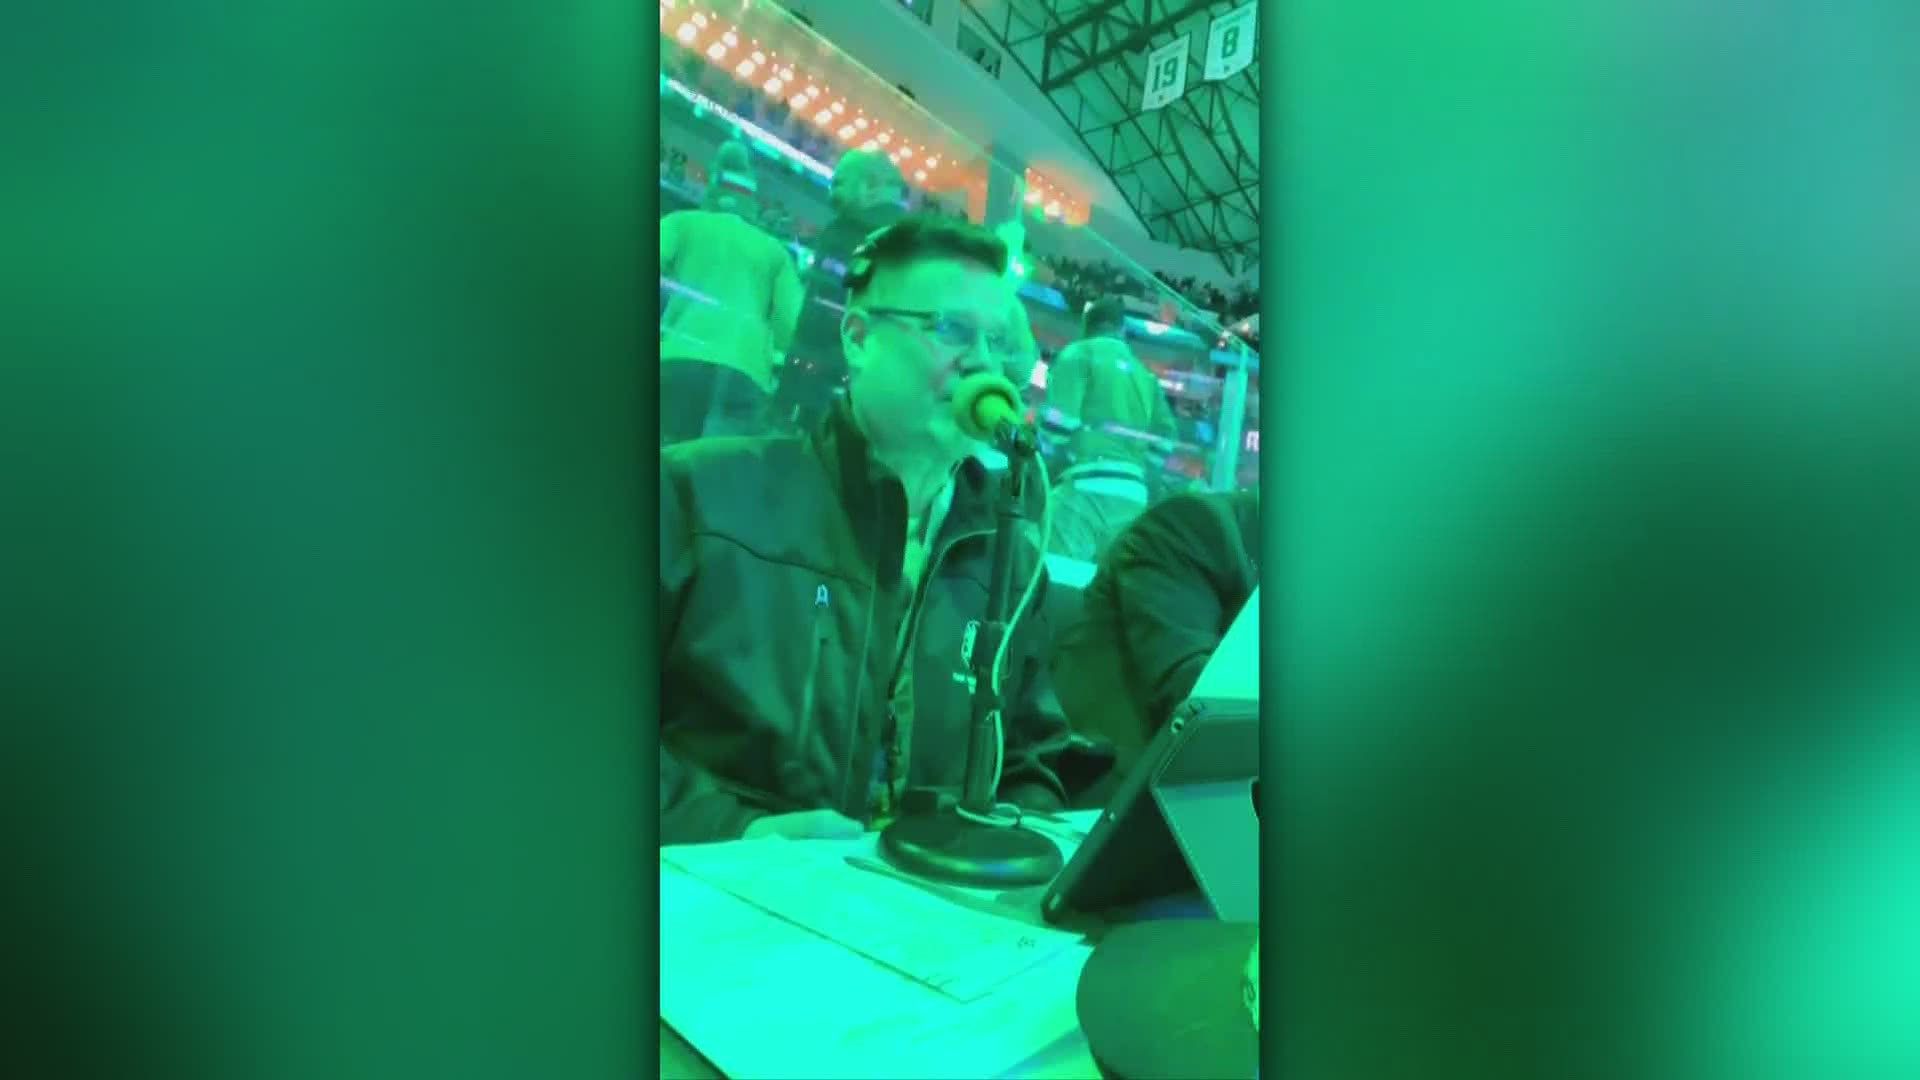 Dallas Stars Announcer S Cameo Messages Score For Charity Wfaa Com